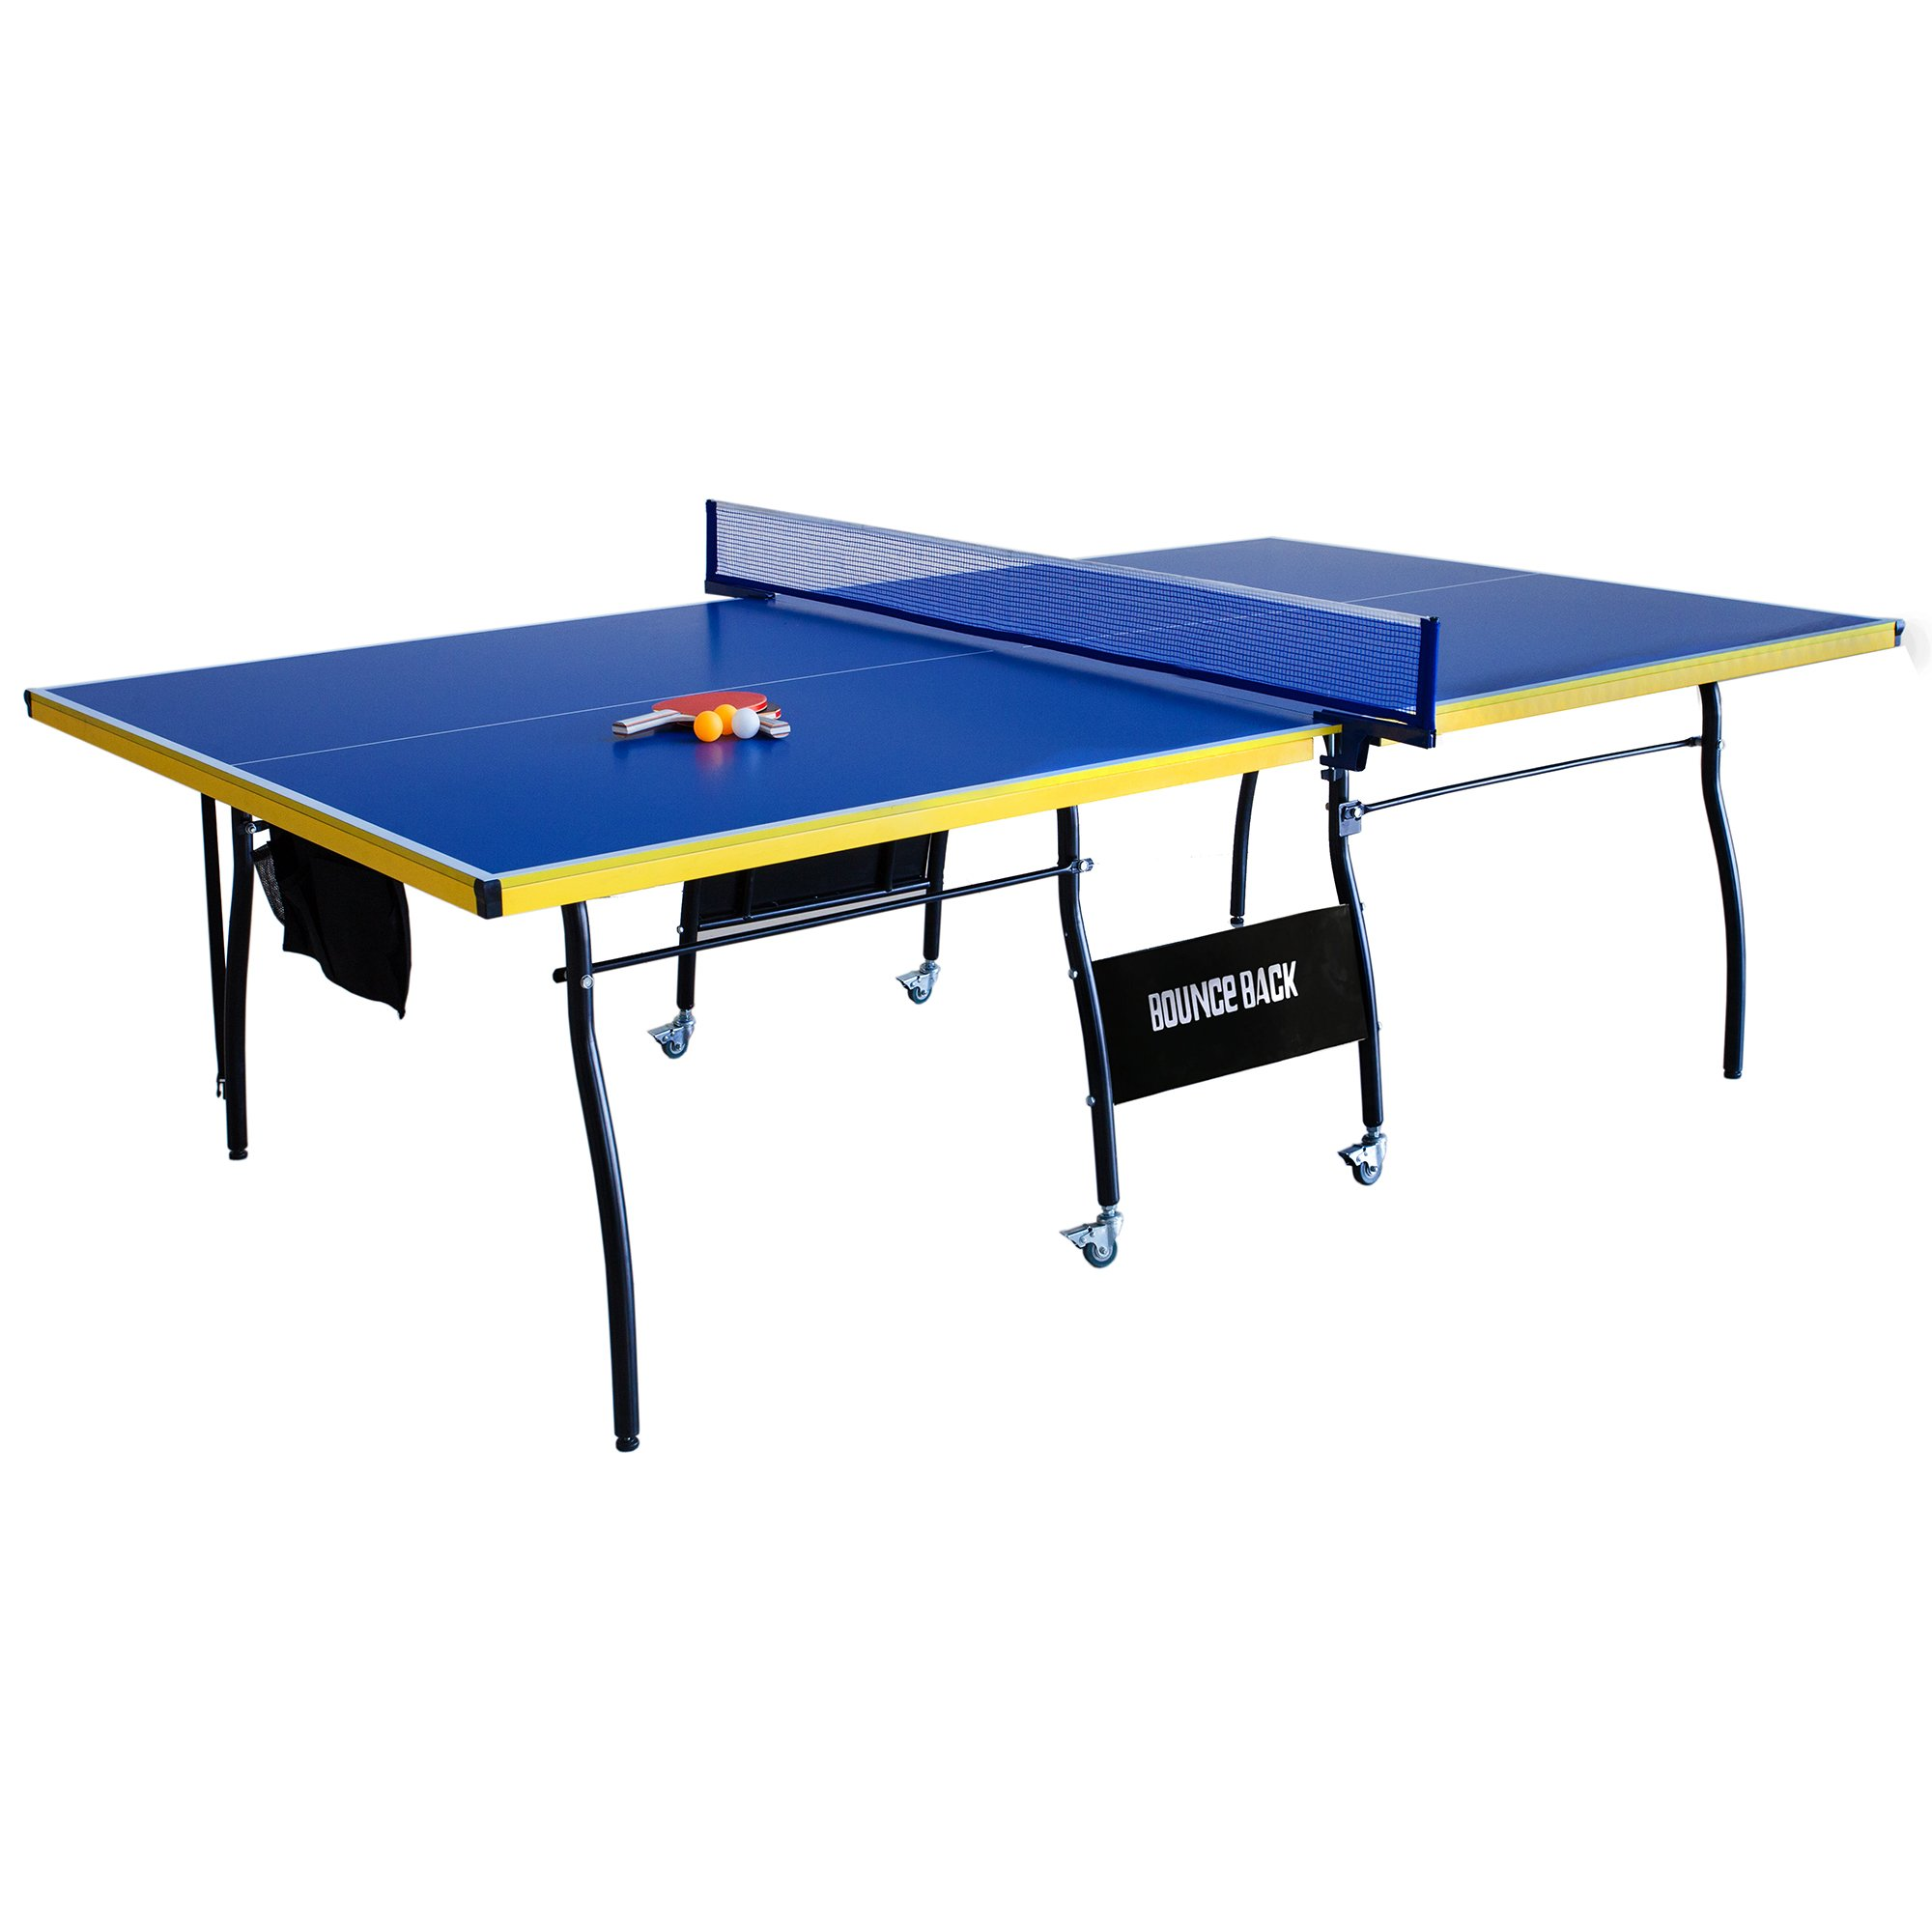 Hathaway Bounce Back Table Tennis - Regulation-Sized 9'x5' Blue Table with Folding Halves for Individual Play - Includes Net, Paddles, Balls